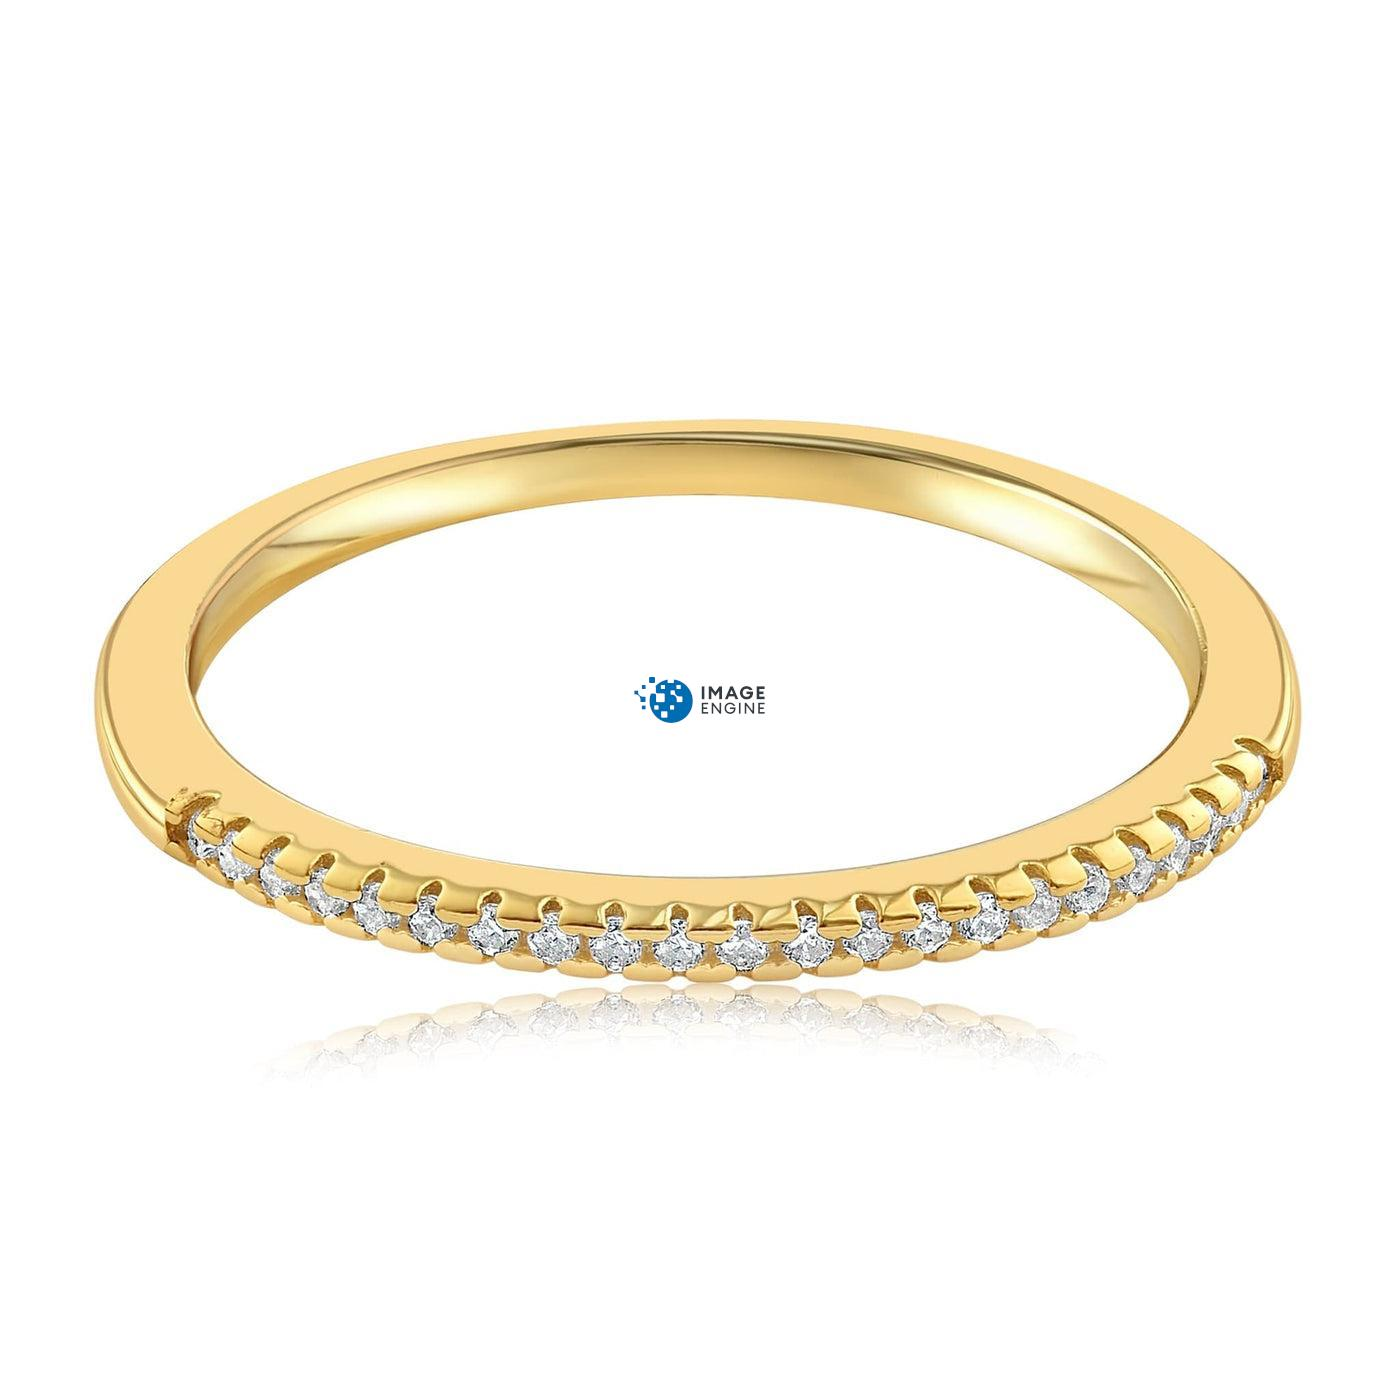 Brianna Bezel Ring - Front View Facing Down - 18K Yellow Gold Vermeil